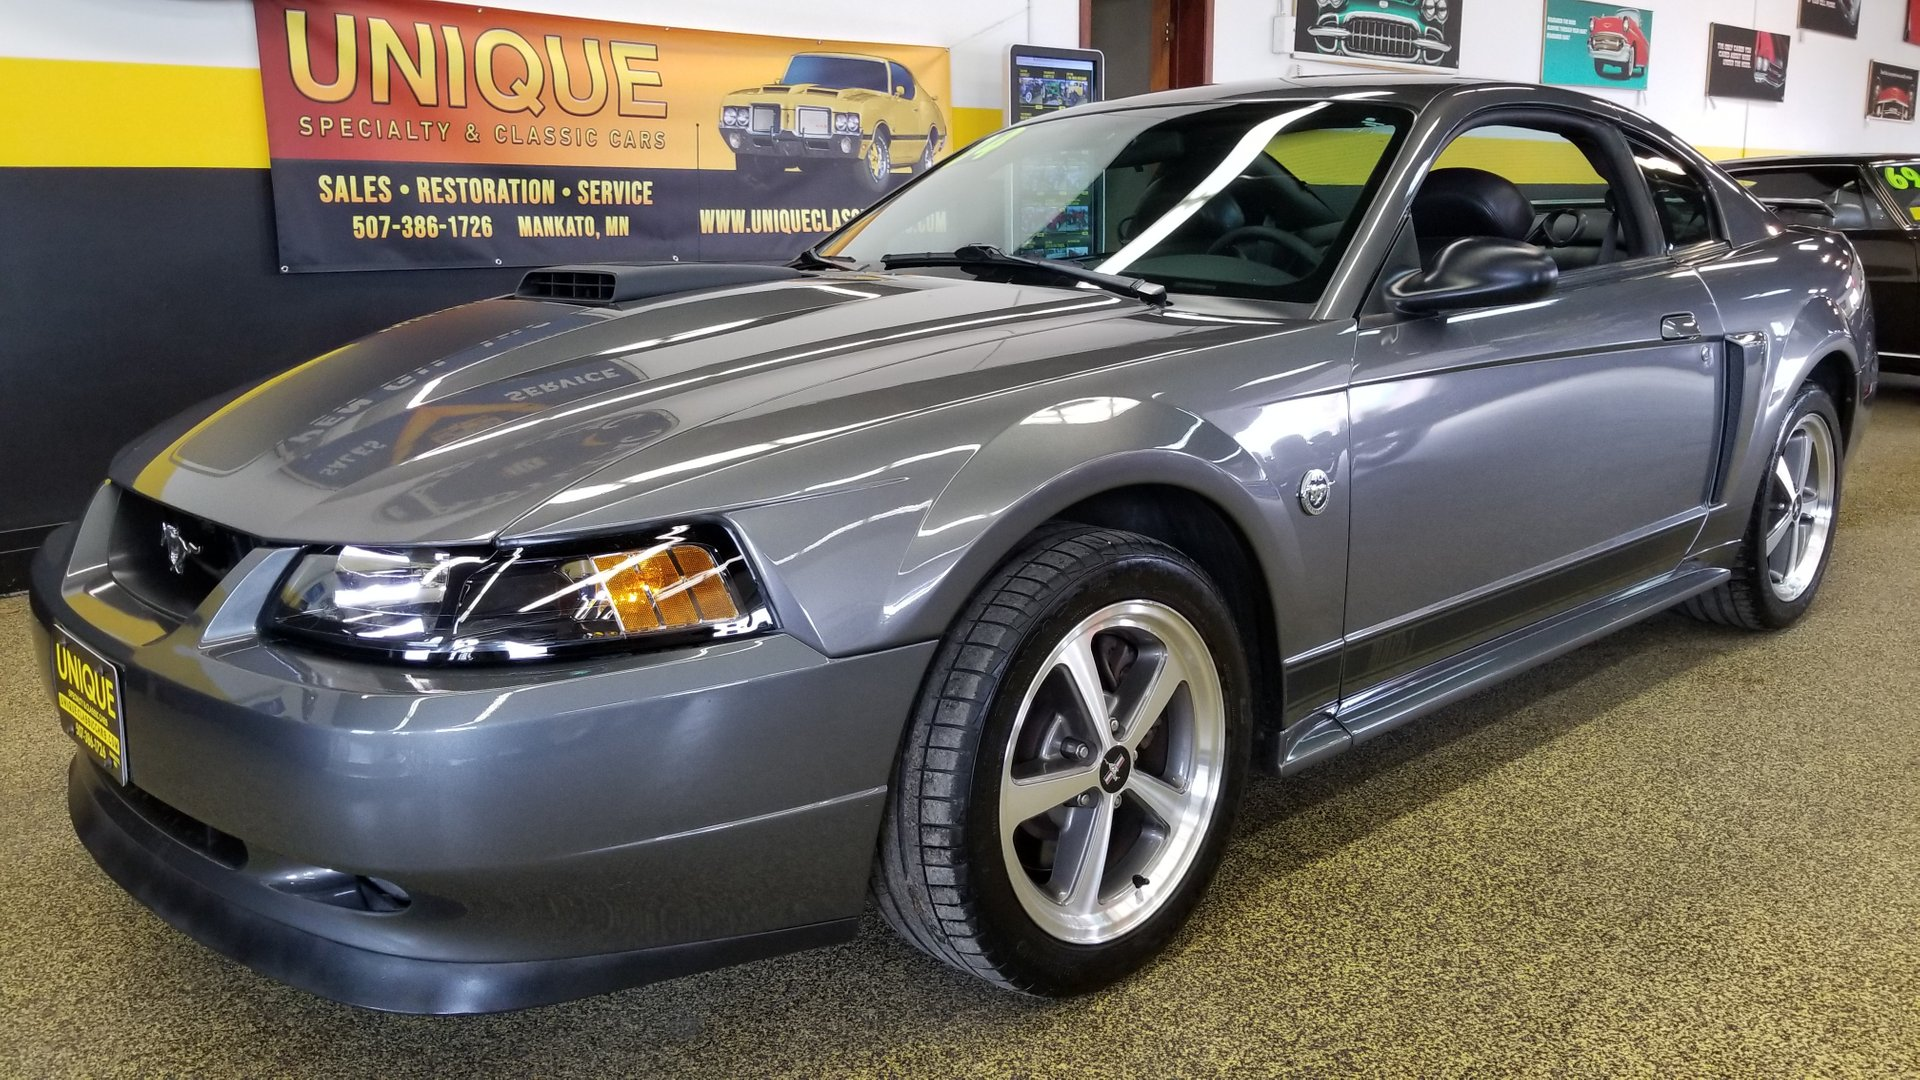 2004 ford mustang mach 1 for sale 165719 motorious